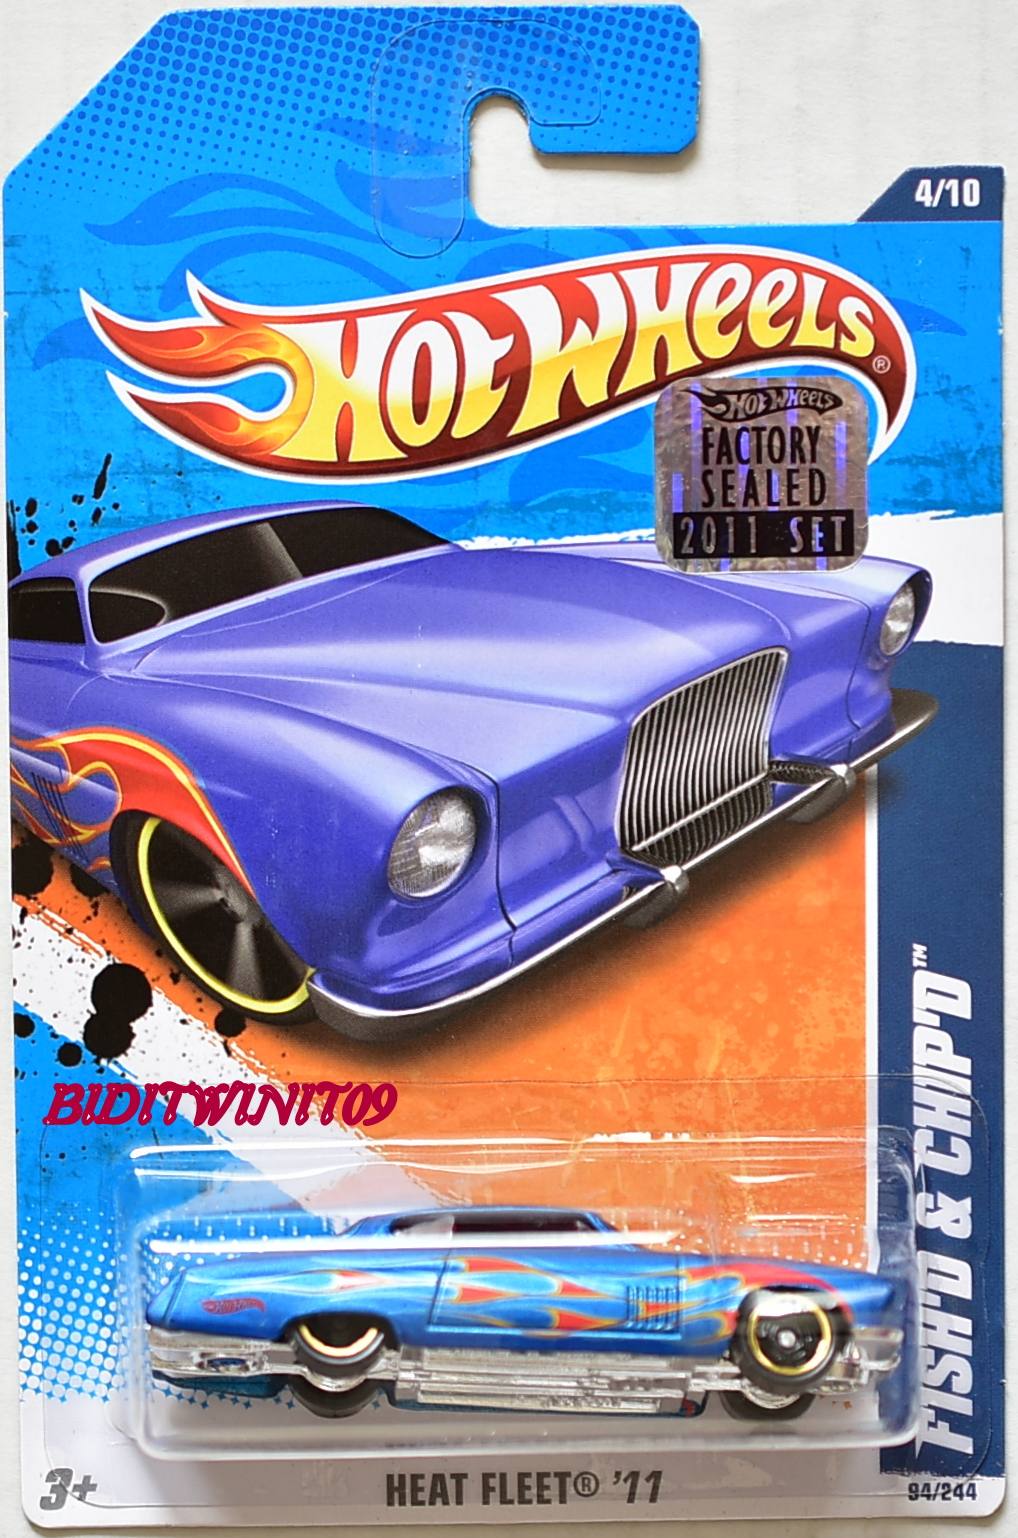 HOT WHEELS 2011 HEAT FLEET FISH'D & CHIP'D BLUE FACTORY SEALED